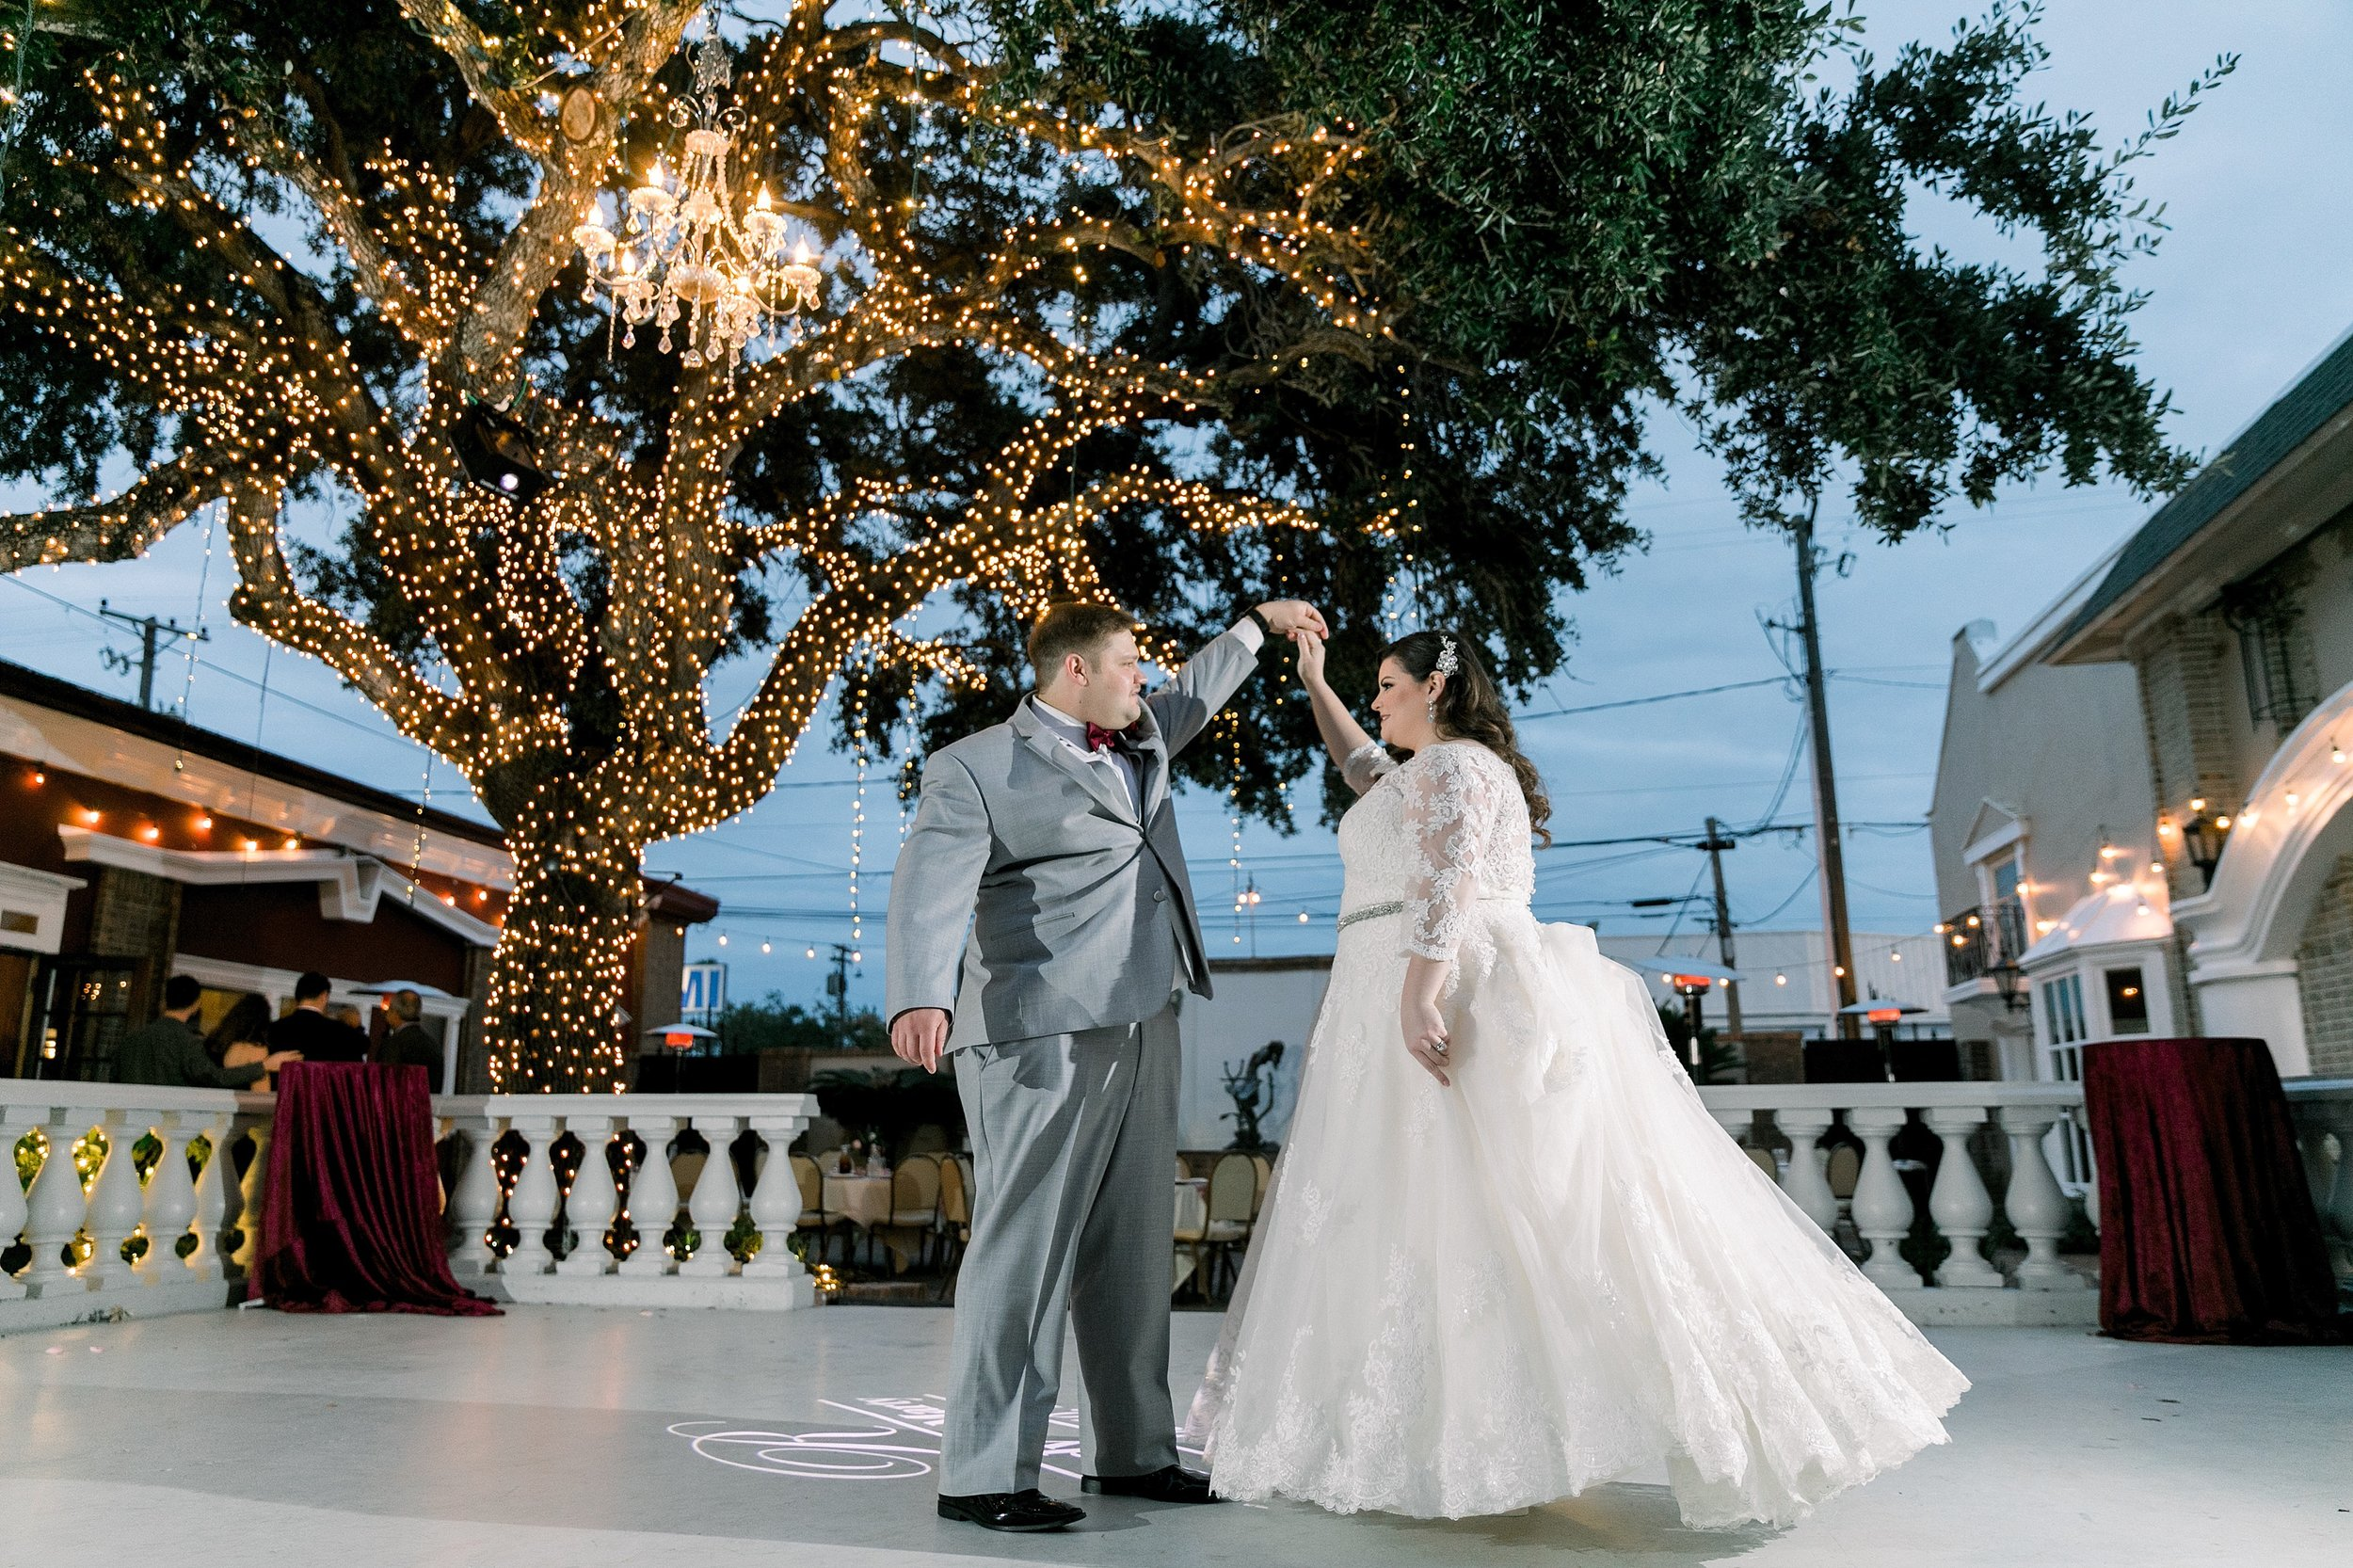 gaslight-at-courtyard-square-corpus-christi-wedding-omni-hotel-fall-winter-wedding-texas-wedding-photographer-lauren-pinson-0087.jpg